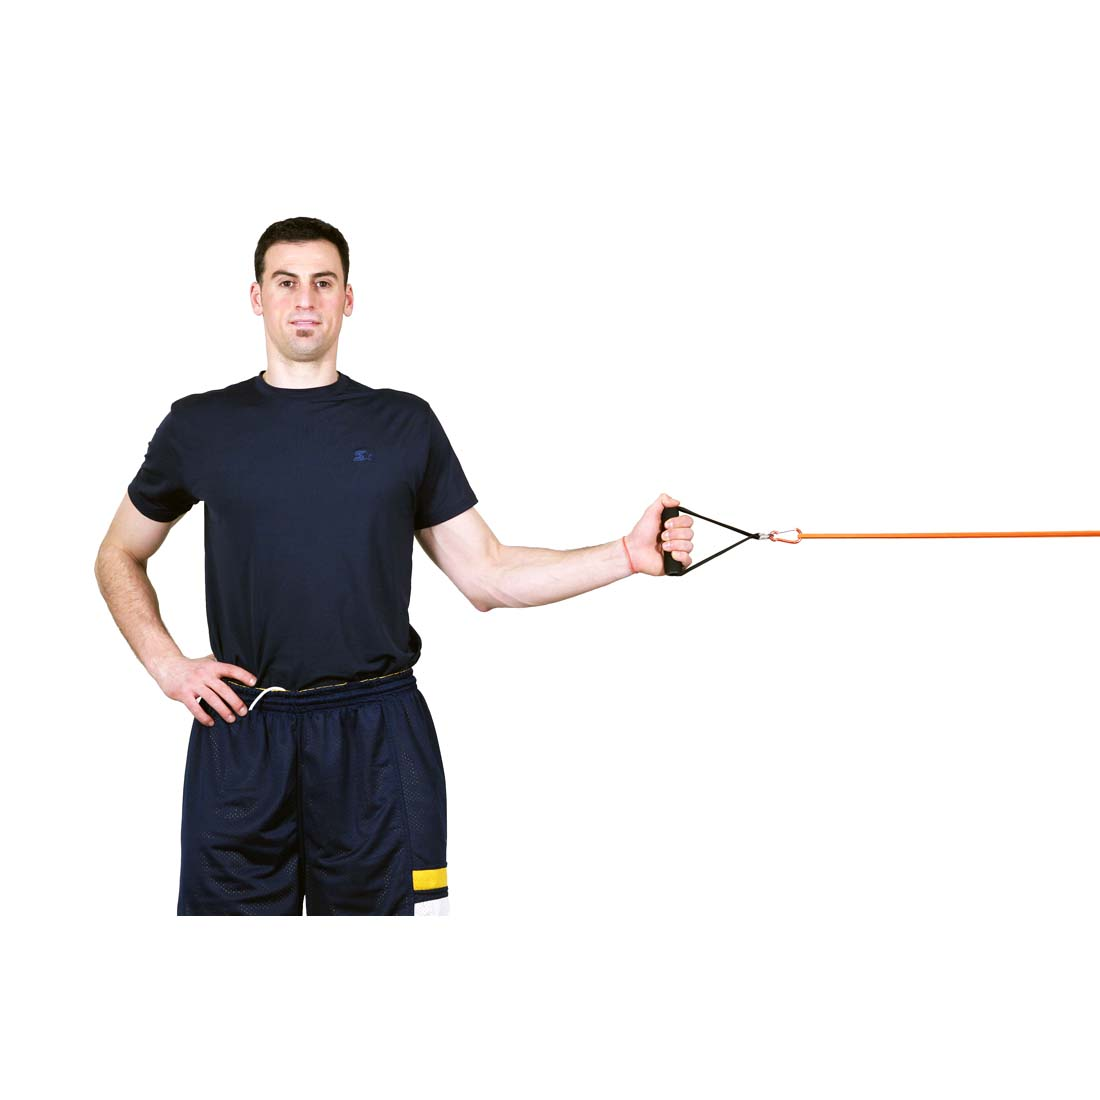 Resistance Bands Upright Row: Shrugs